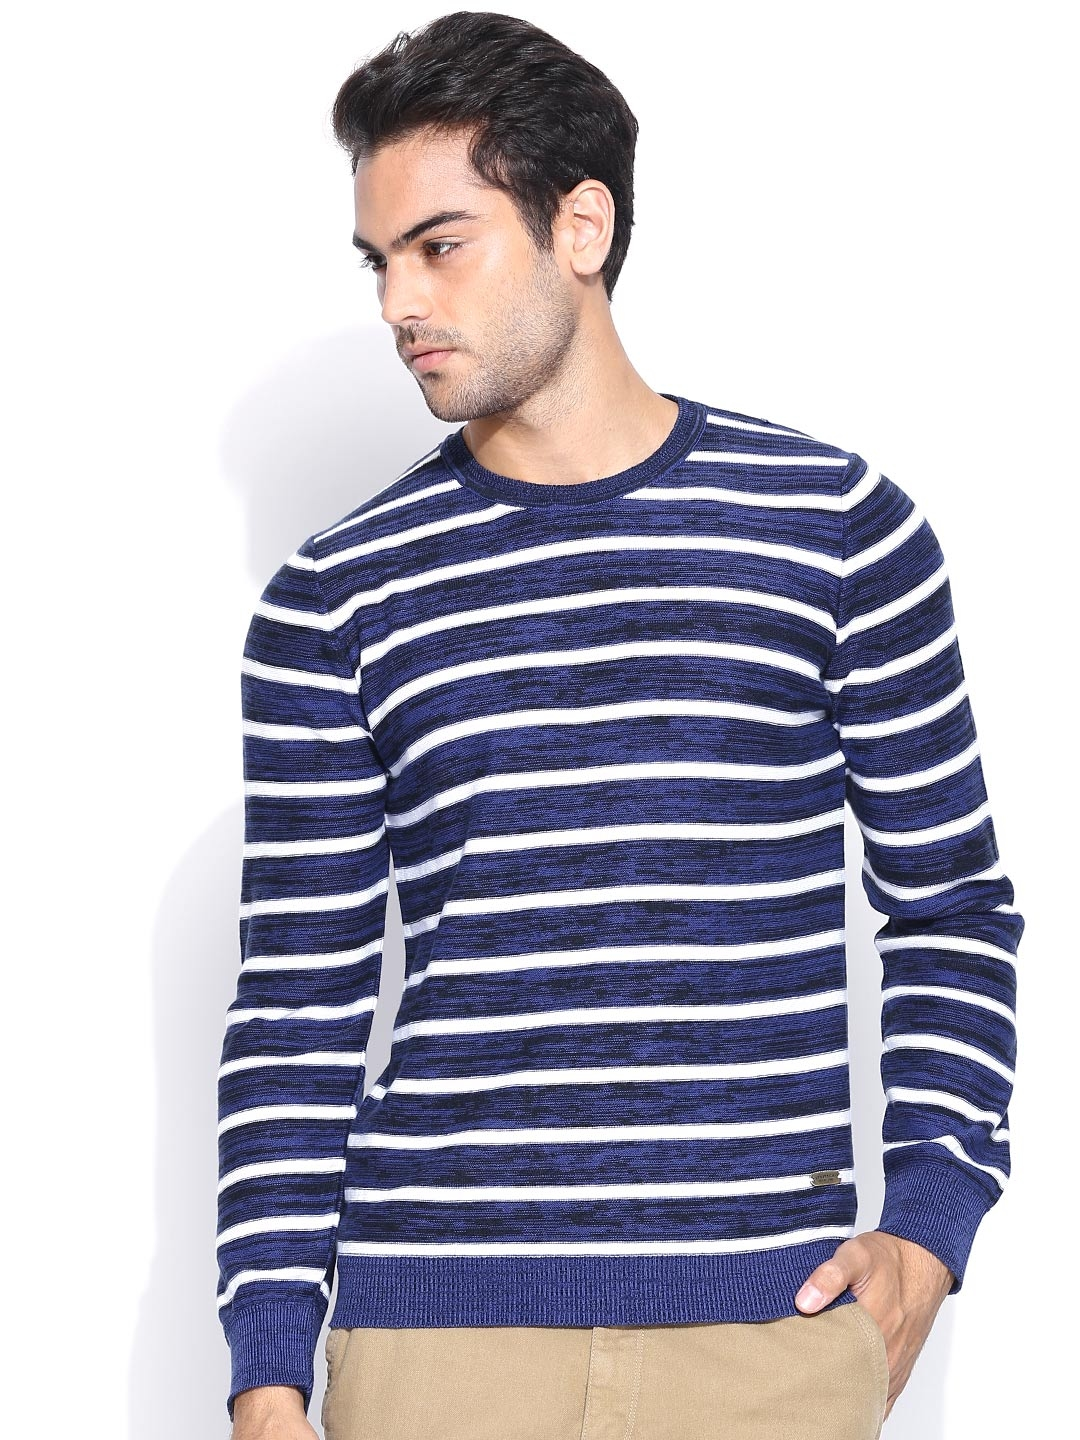 Buy United Colors Of Benetton Men Blue White Striped Sweater